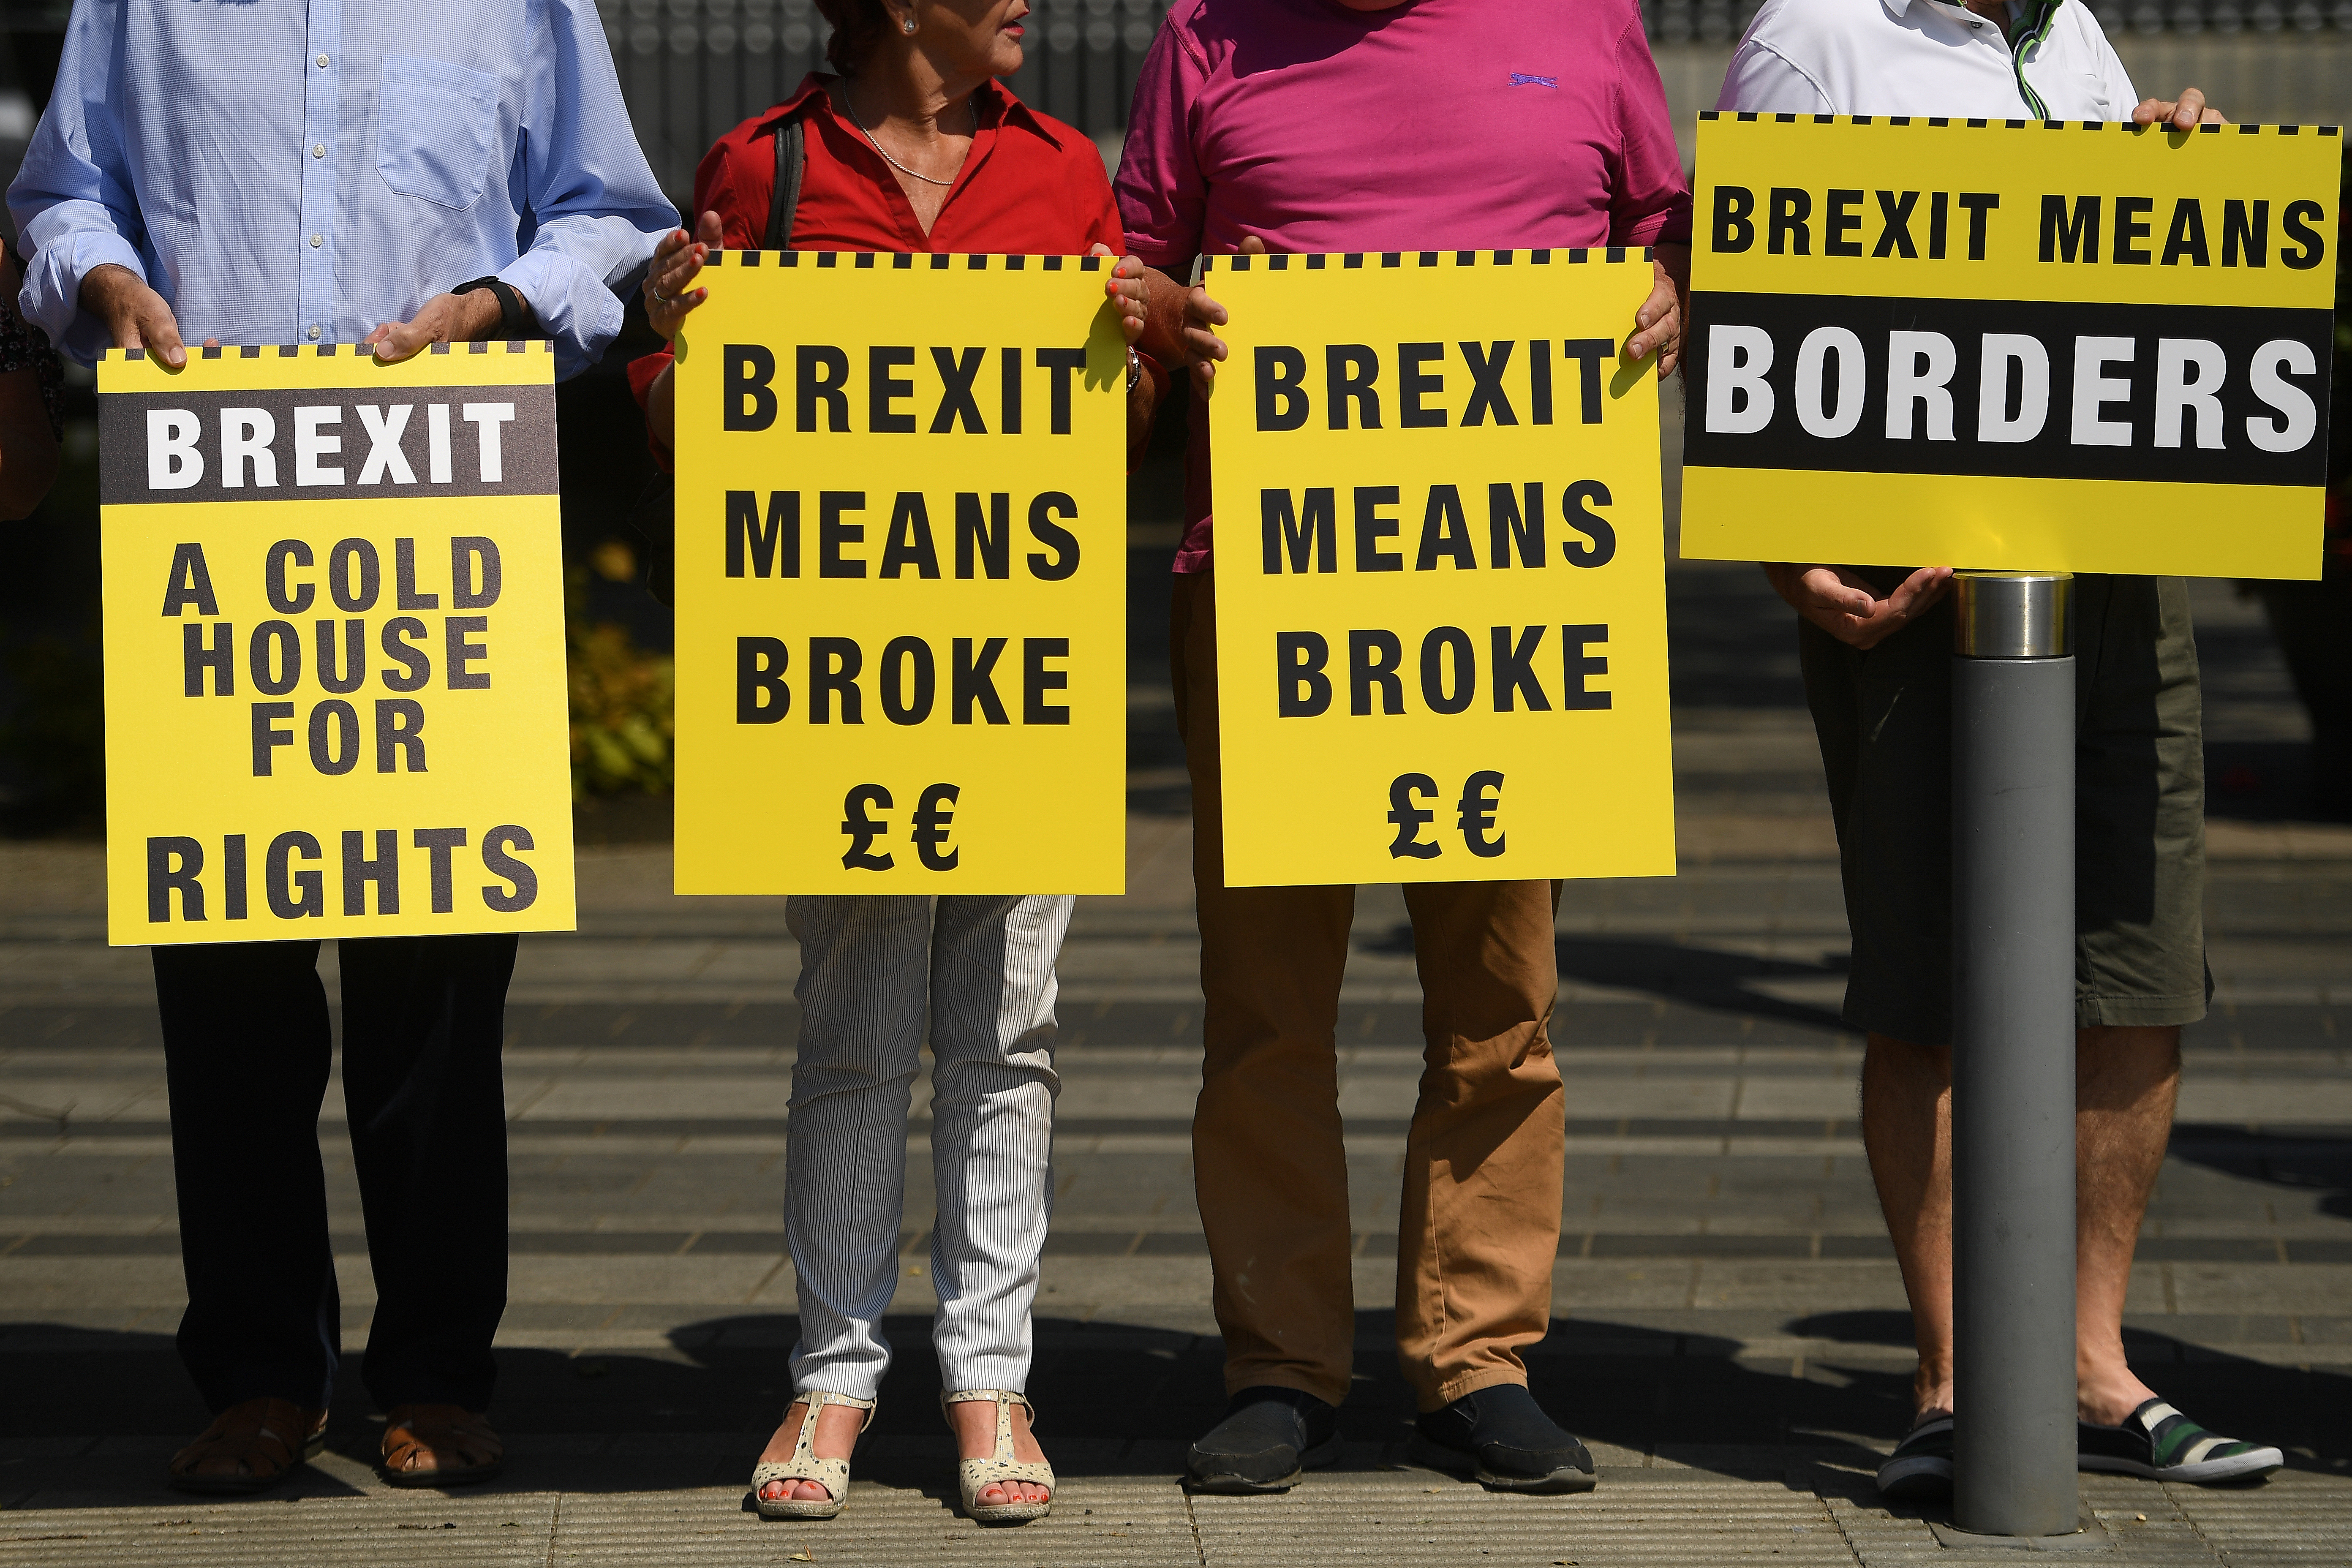 FILE - Activists with the group 'Borders Against Brexit' protest in the border town of Dundalk, Ireland, June 28, 2018.